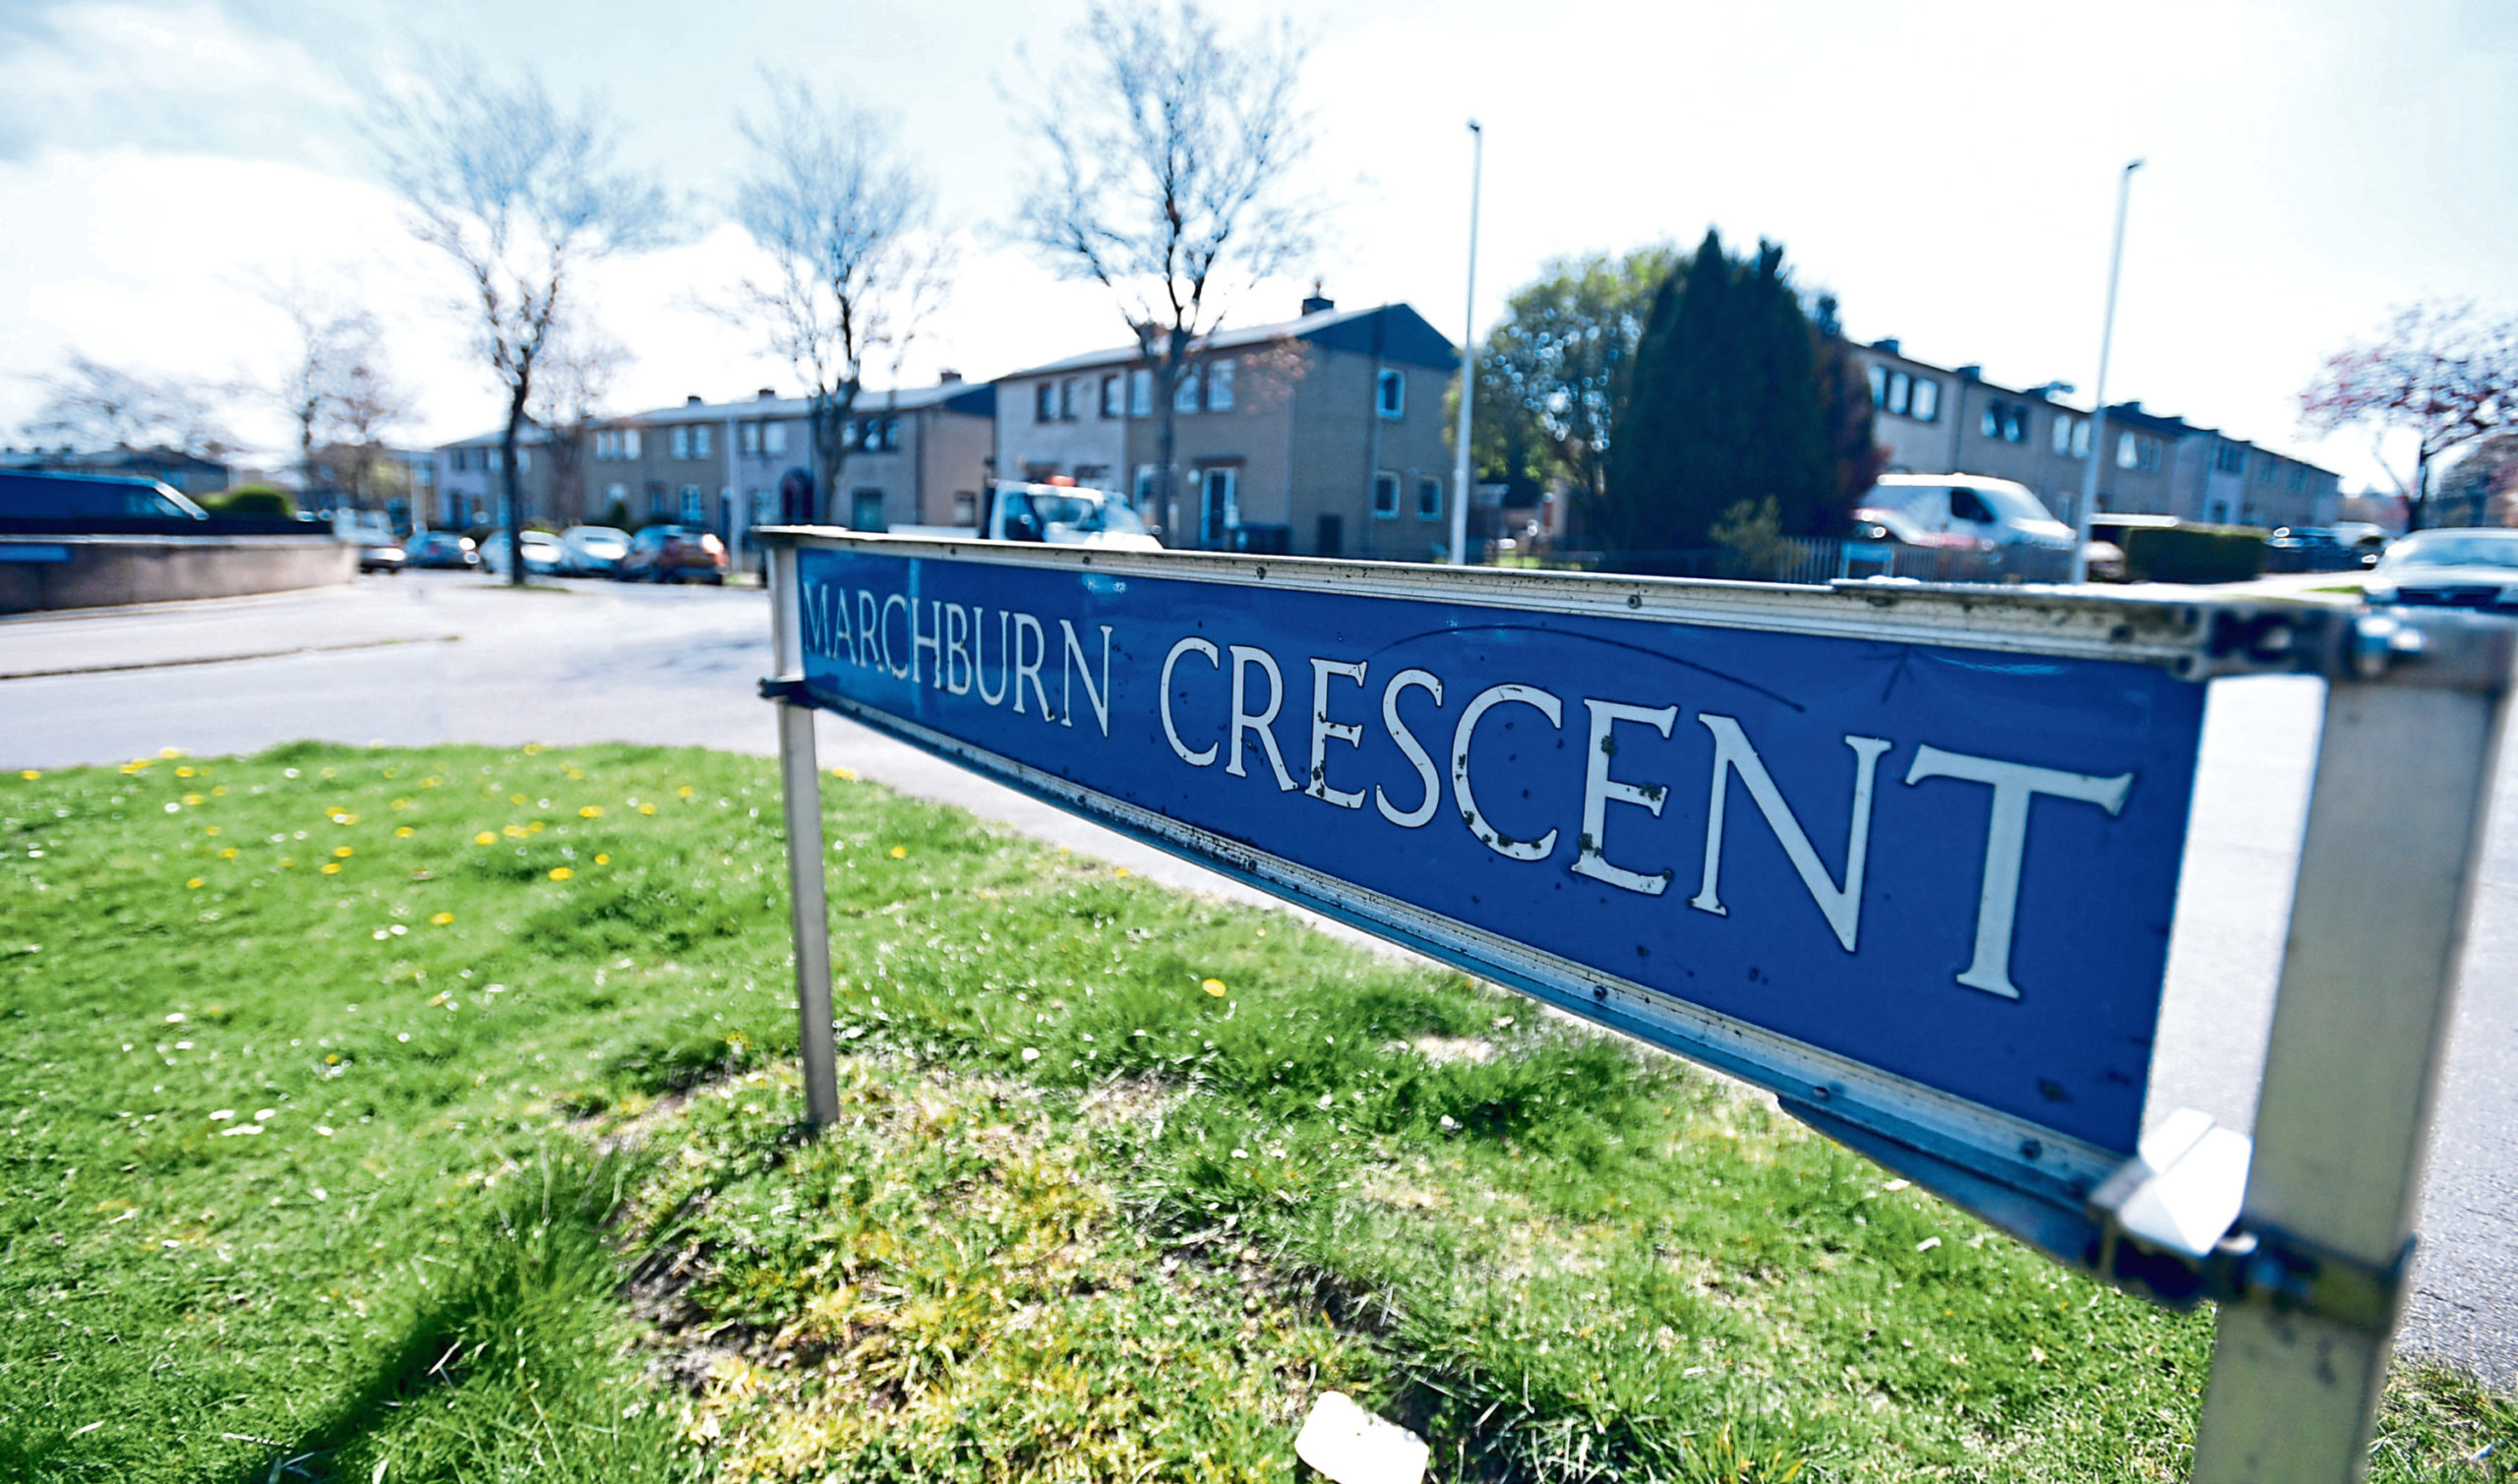 Two men have appeared in court  after an incident in Marchburn Crescent